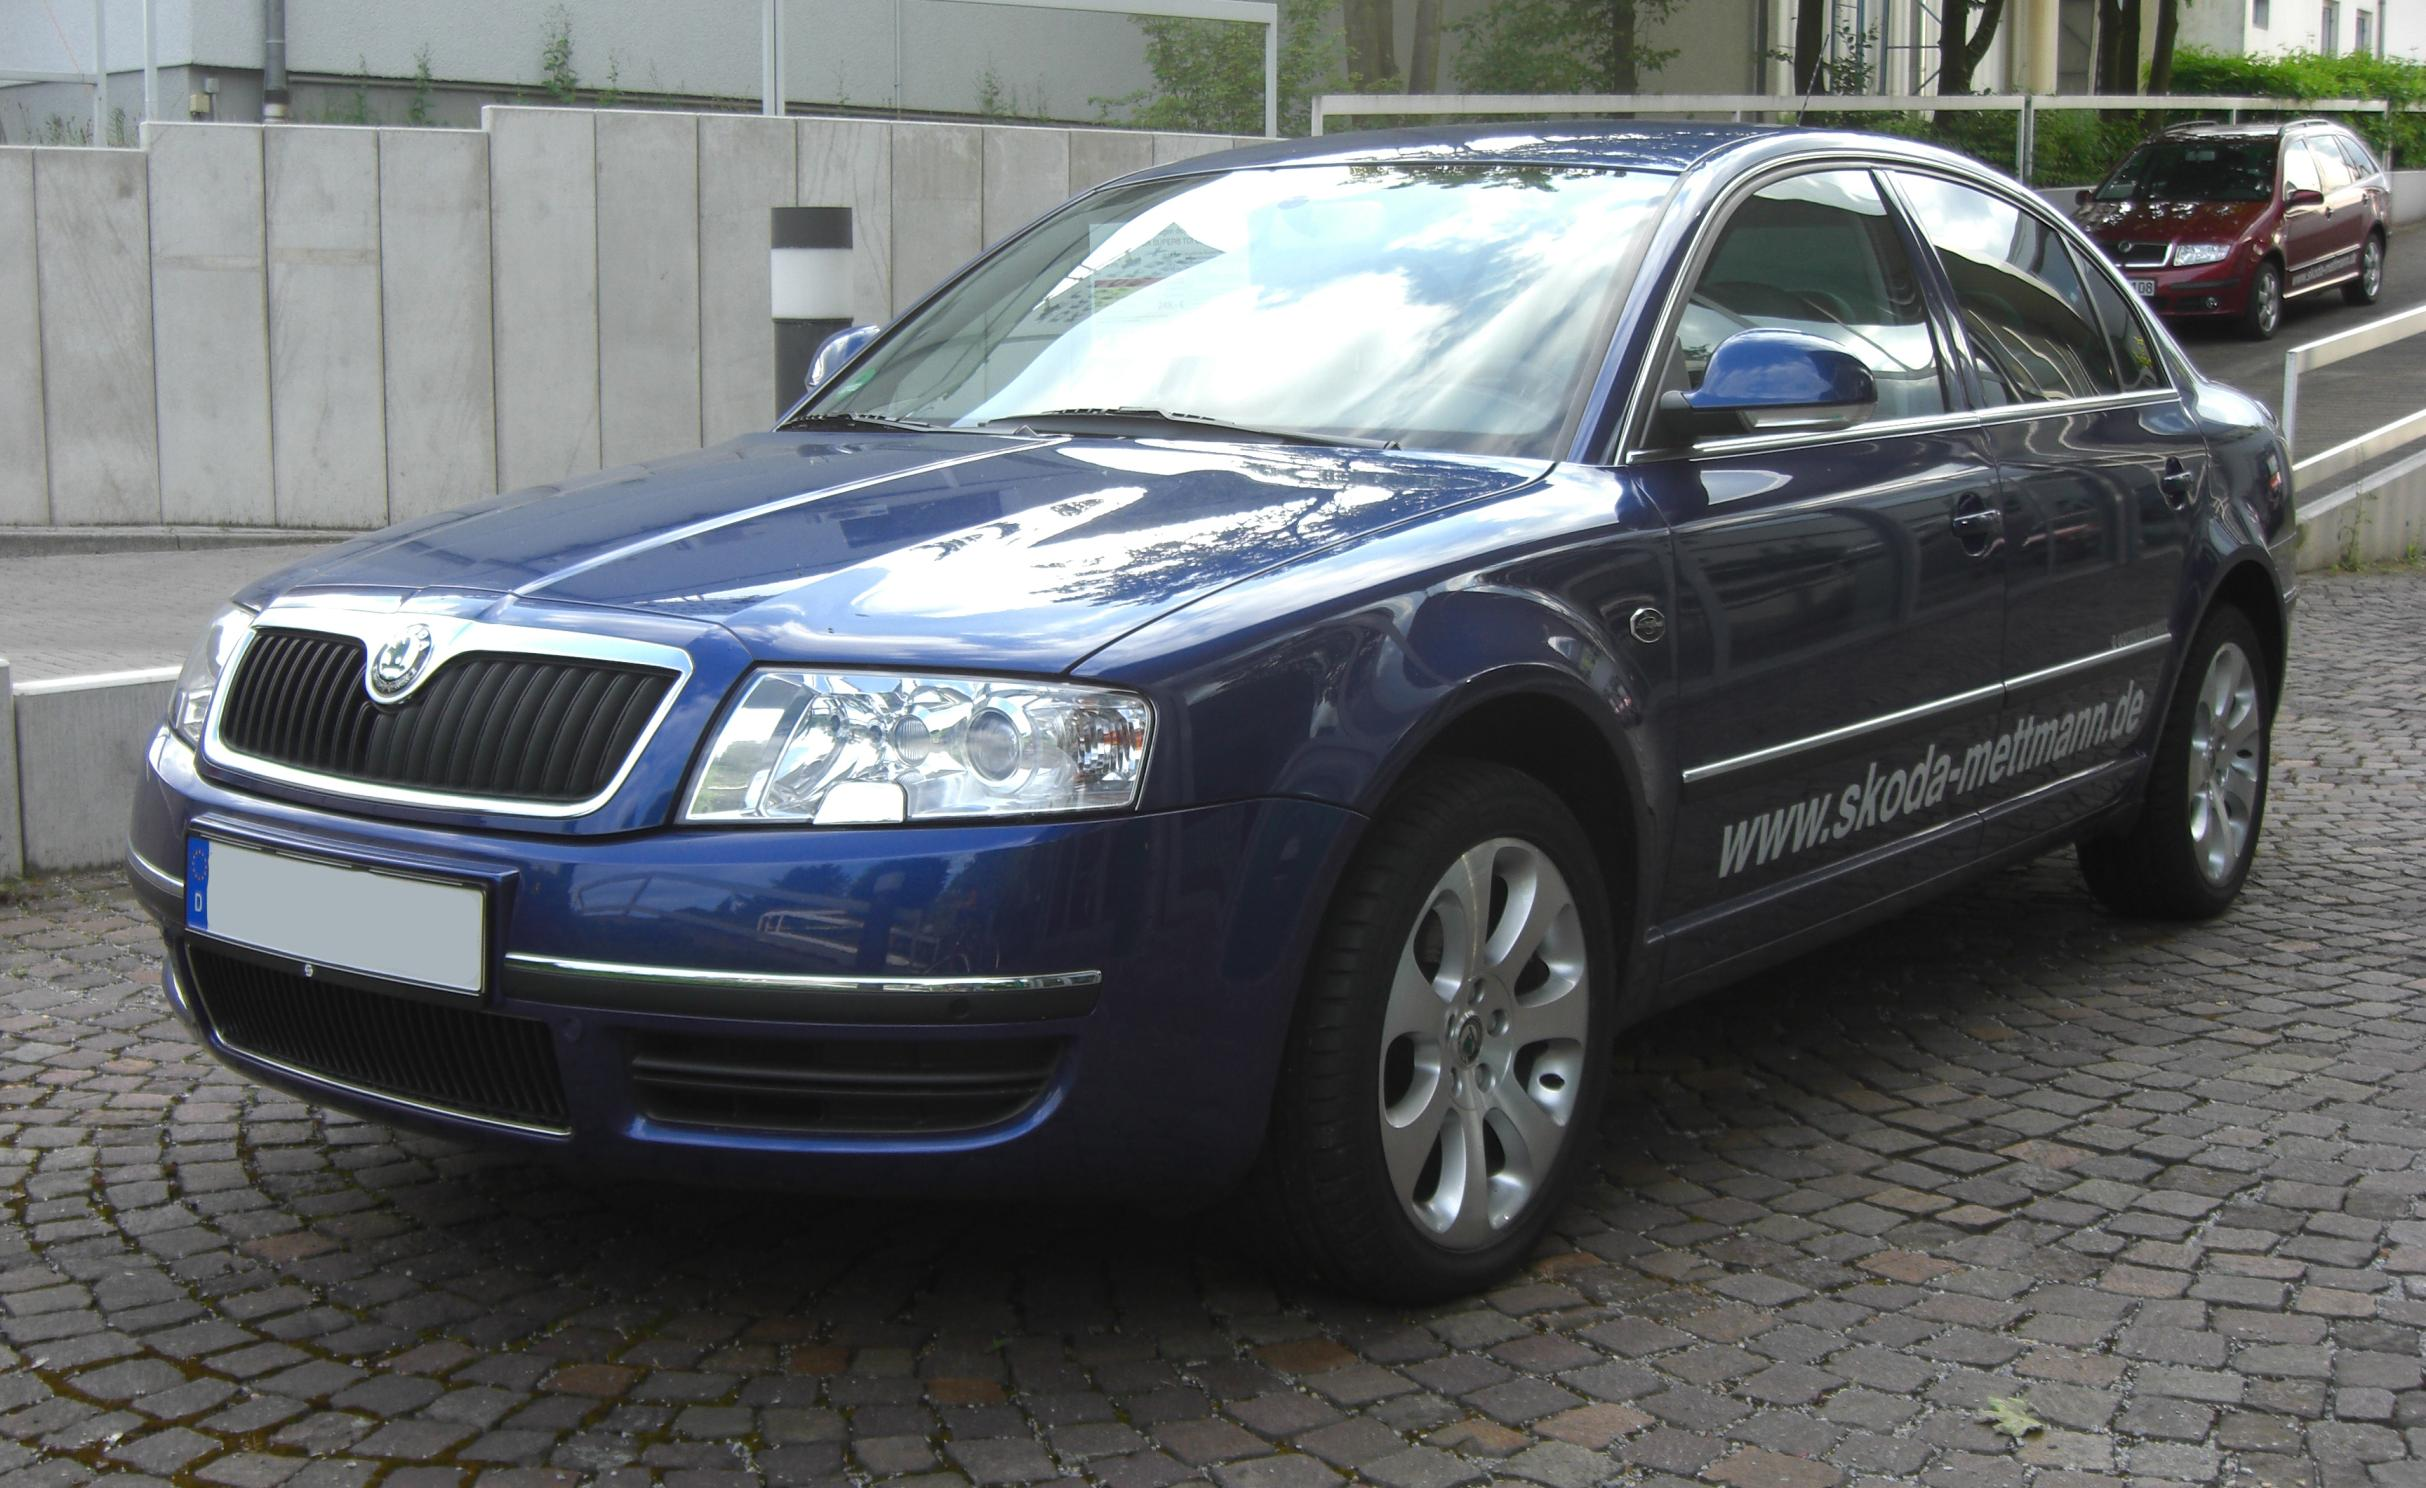 file skoda superb facelift laurin klement wikimedia commons. Black Bedroom Furniture Sets. Home Design Ideas